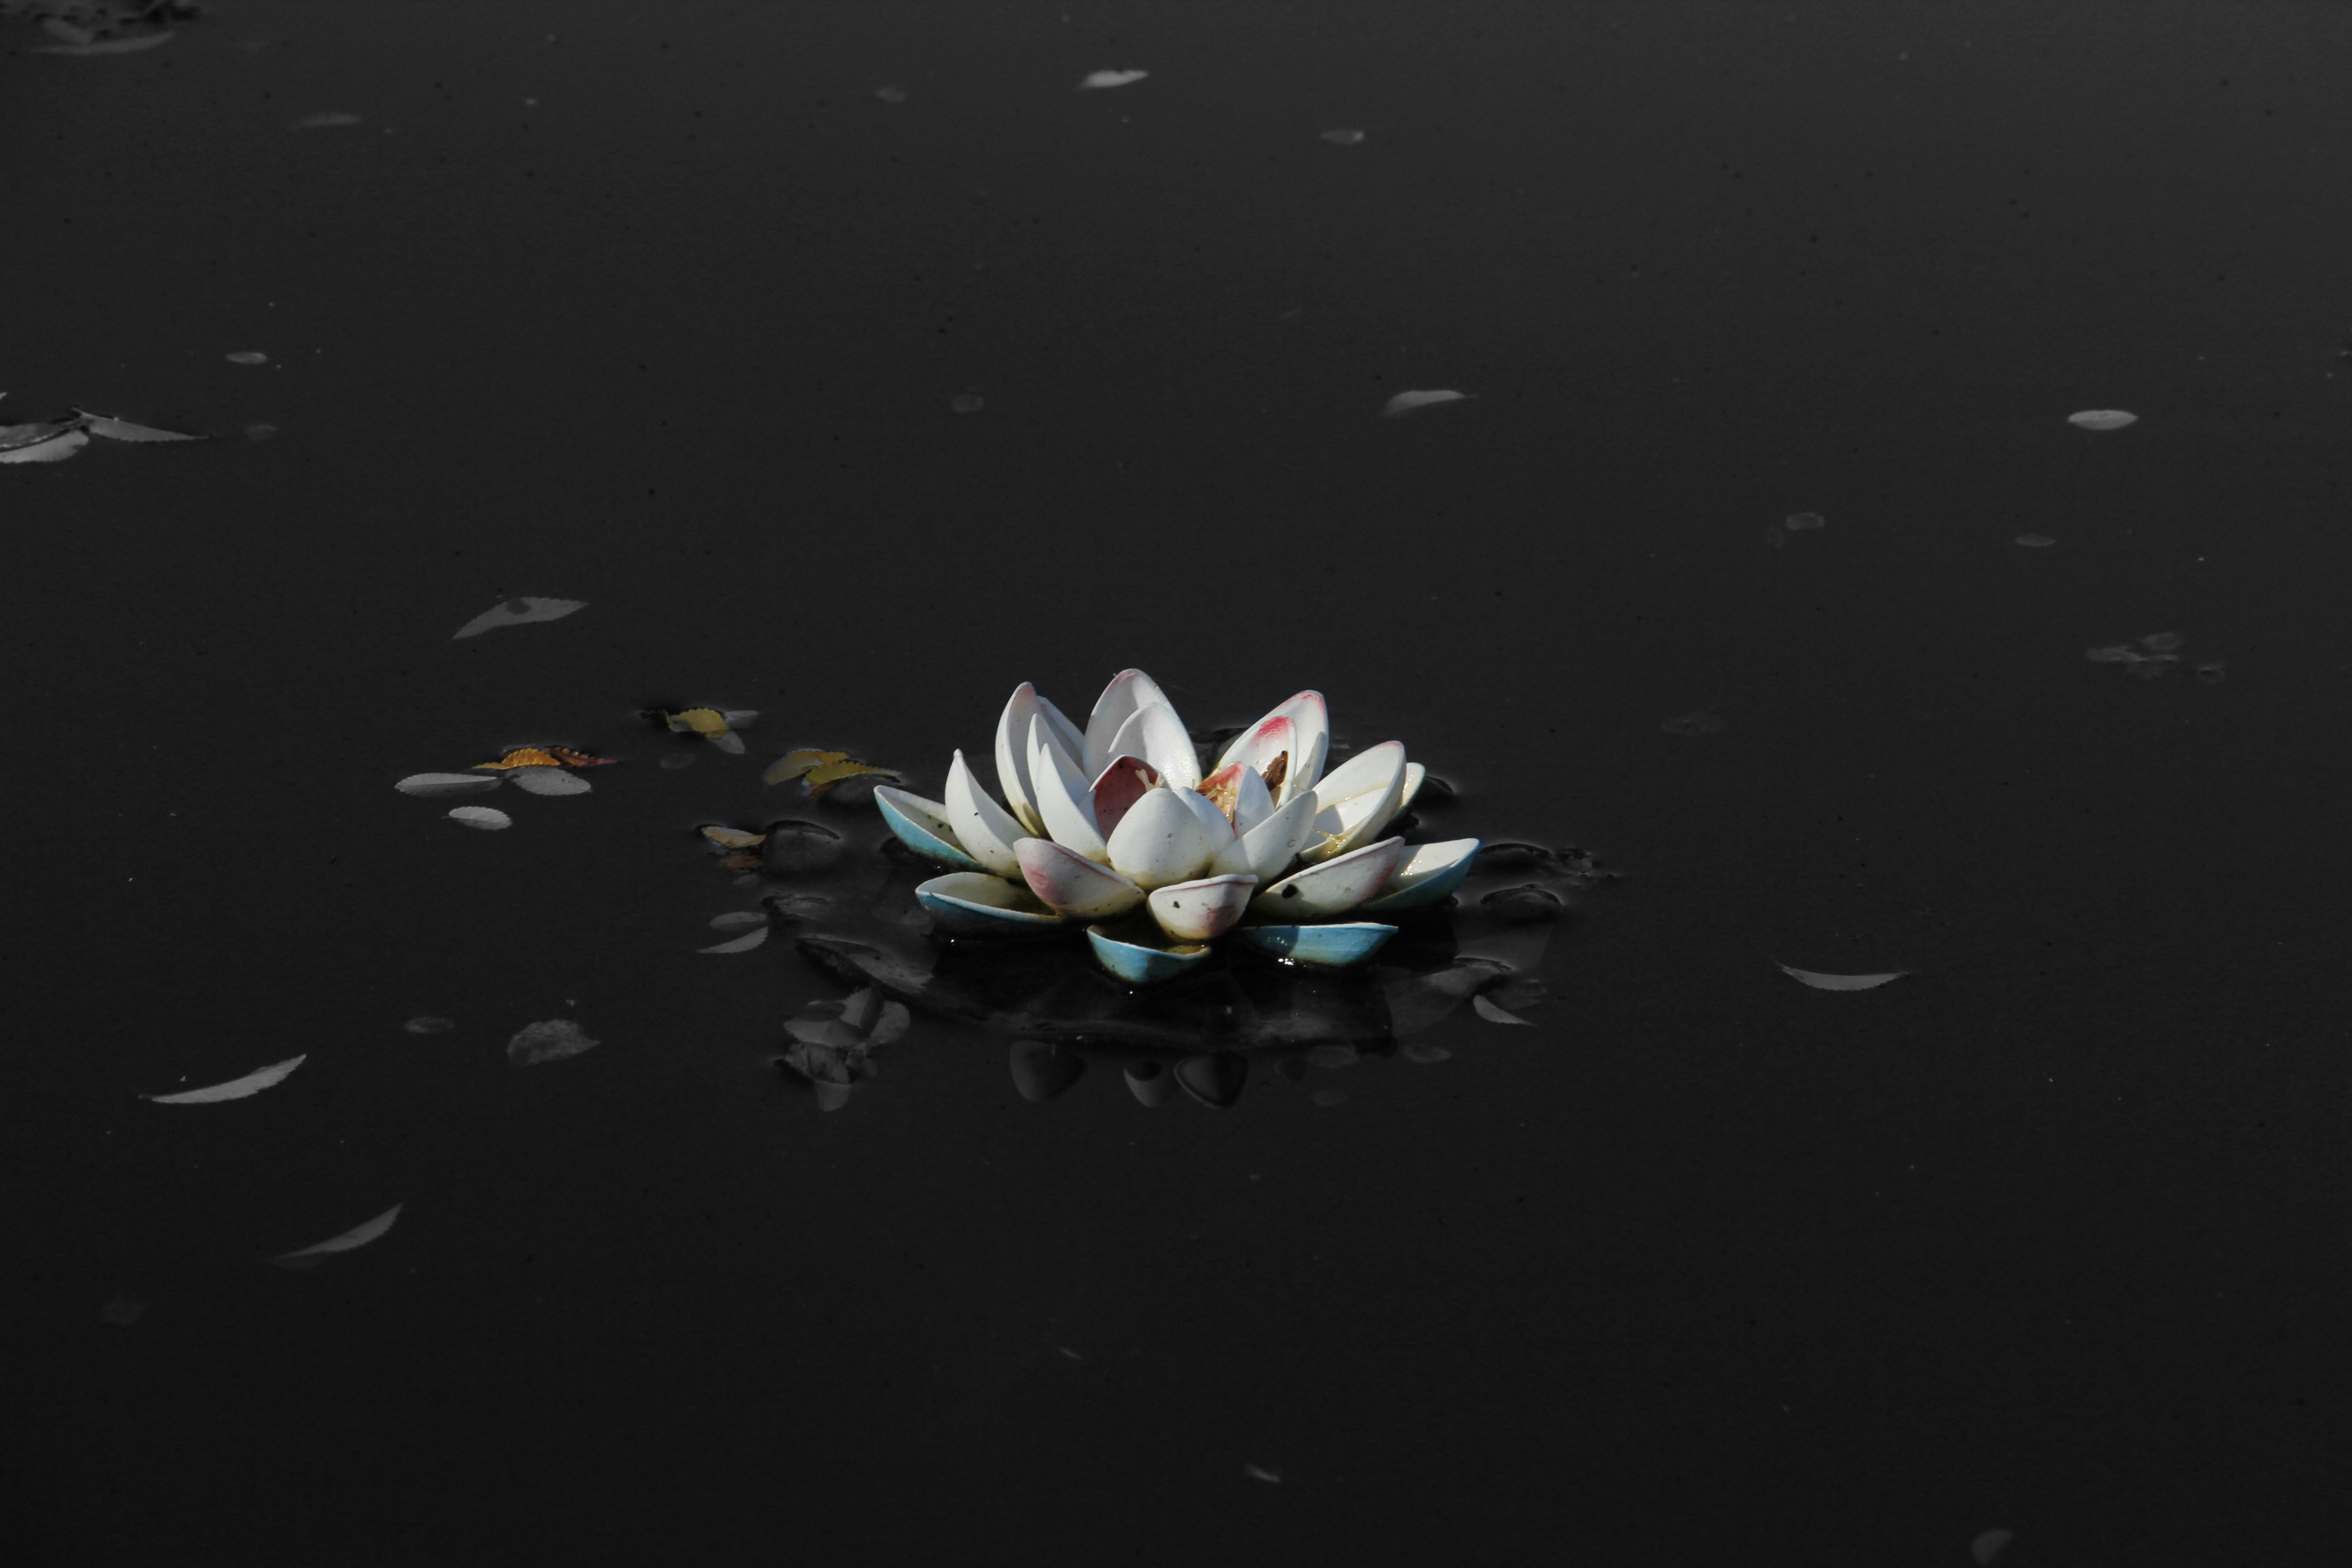 Black lotus flower wallpapers hd resolution natures wallpapers black lotus flower wallpapers hd resolution izmirmasajfo Image collections